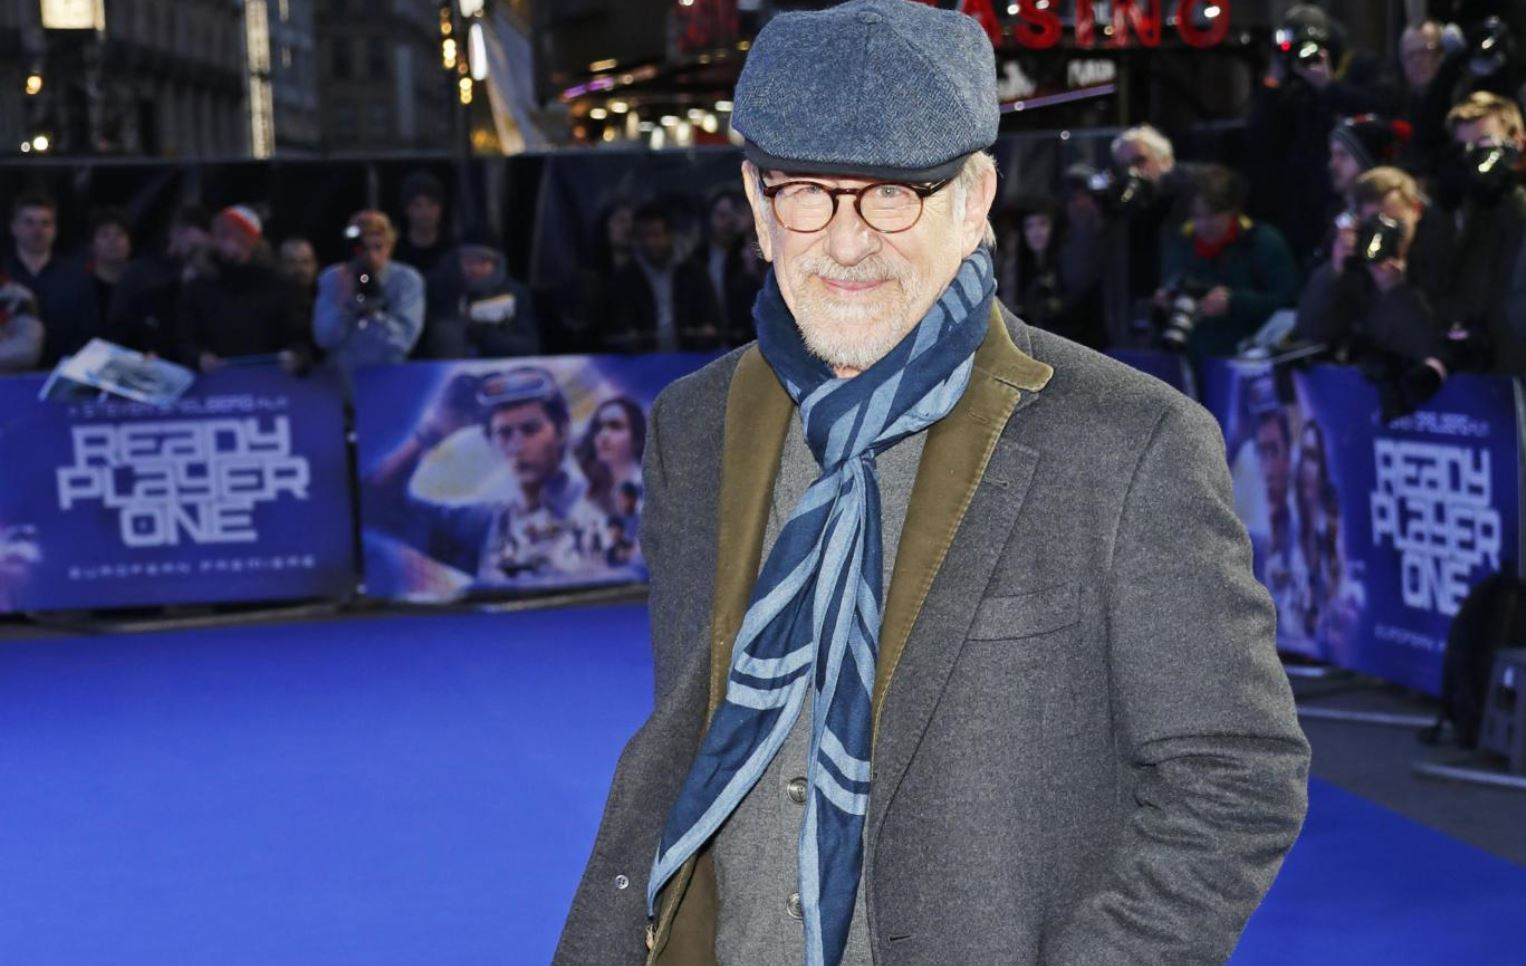 Steven Spielberg at Ready Player One Premiere